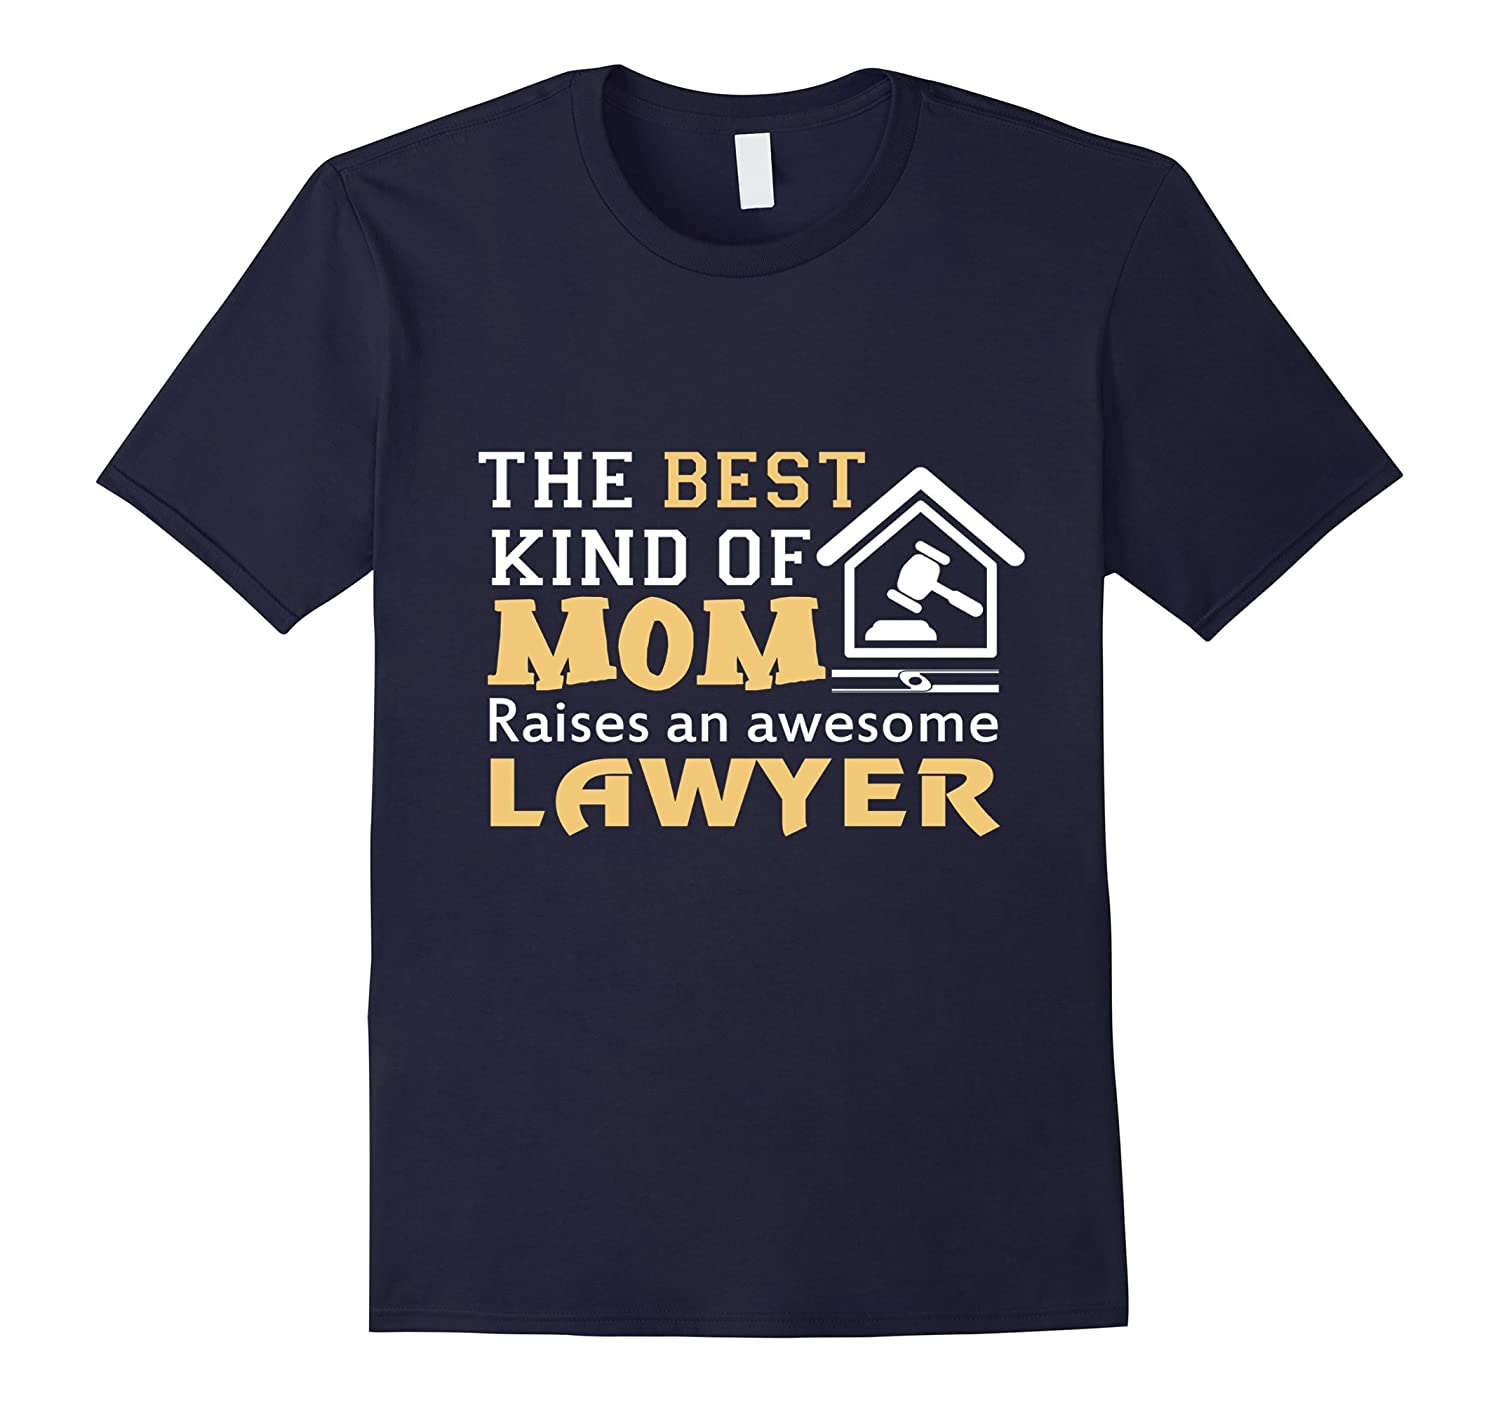 Proud Mom of Lawyer Funny T shirt for Mother Love SonBoys-TH